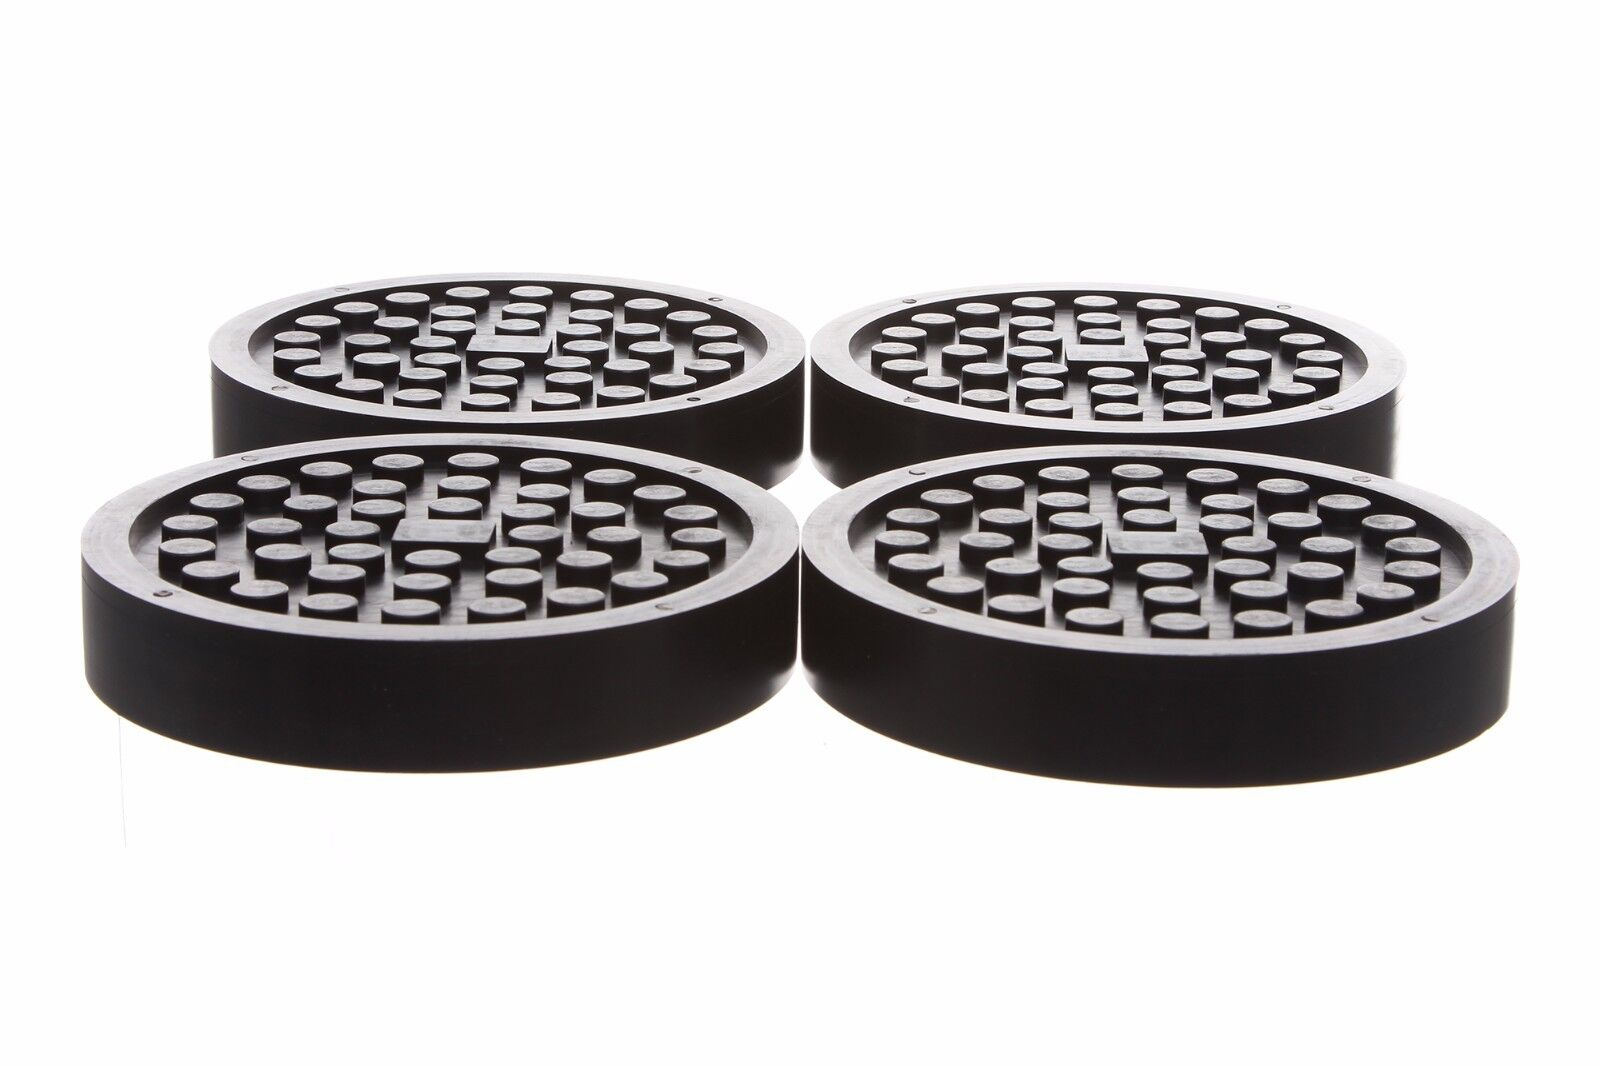 Alm Round Replacement Lift Pad Set Of 4 Equivalent To